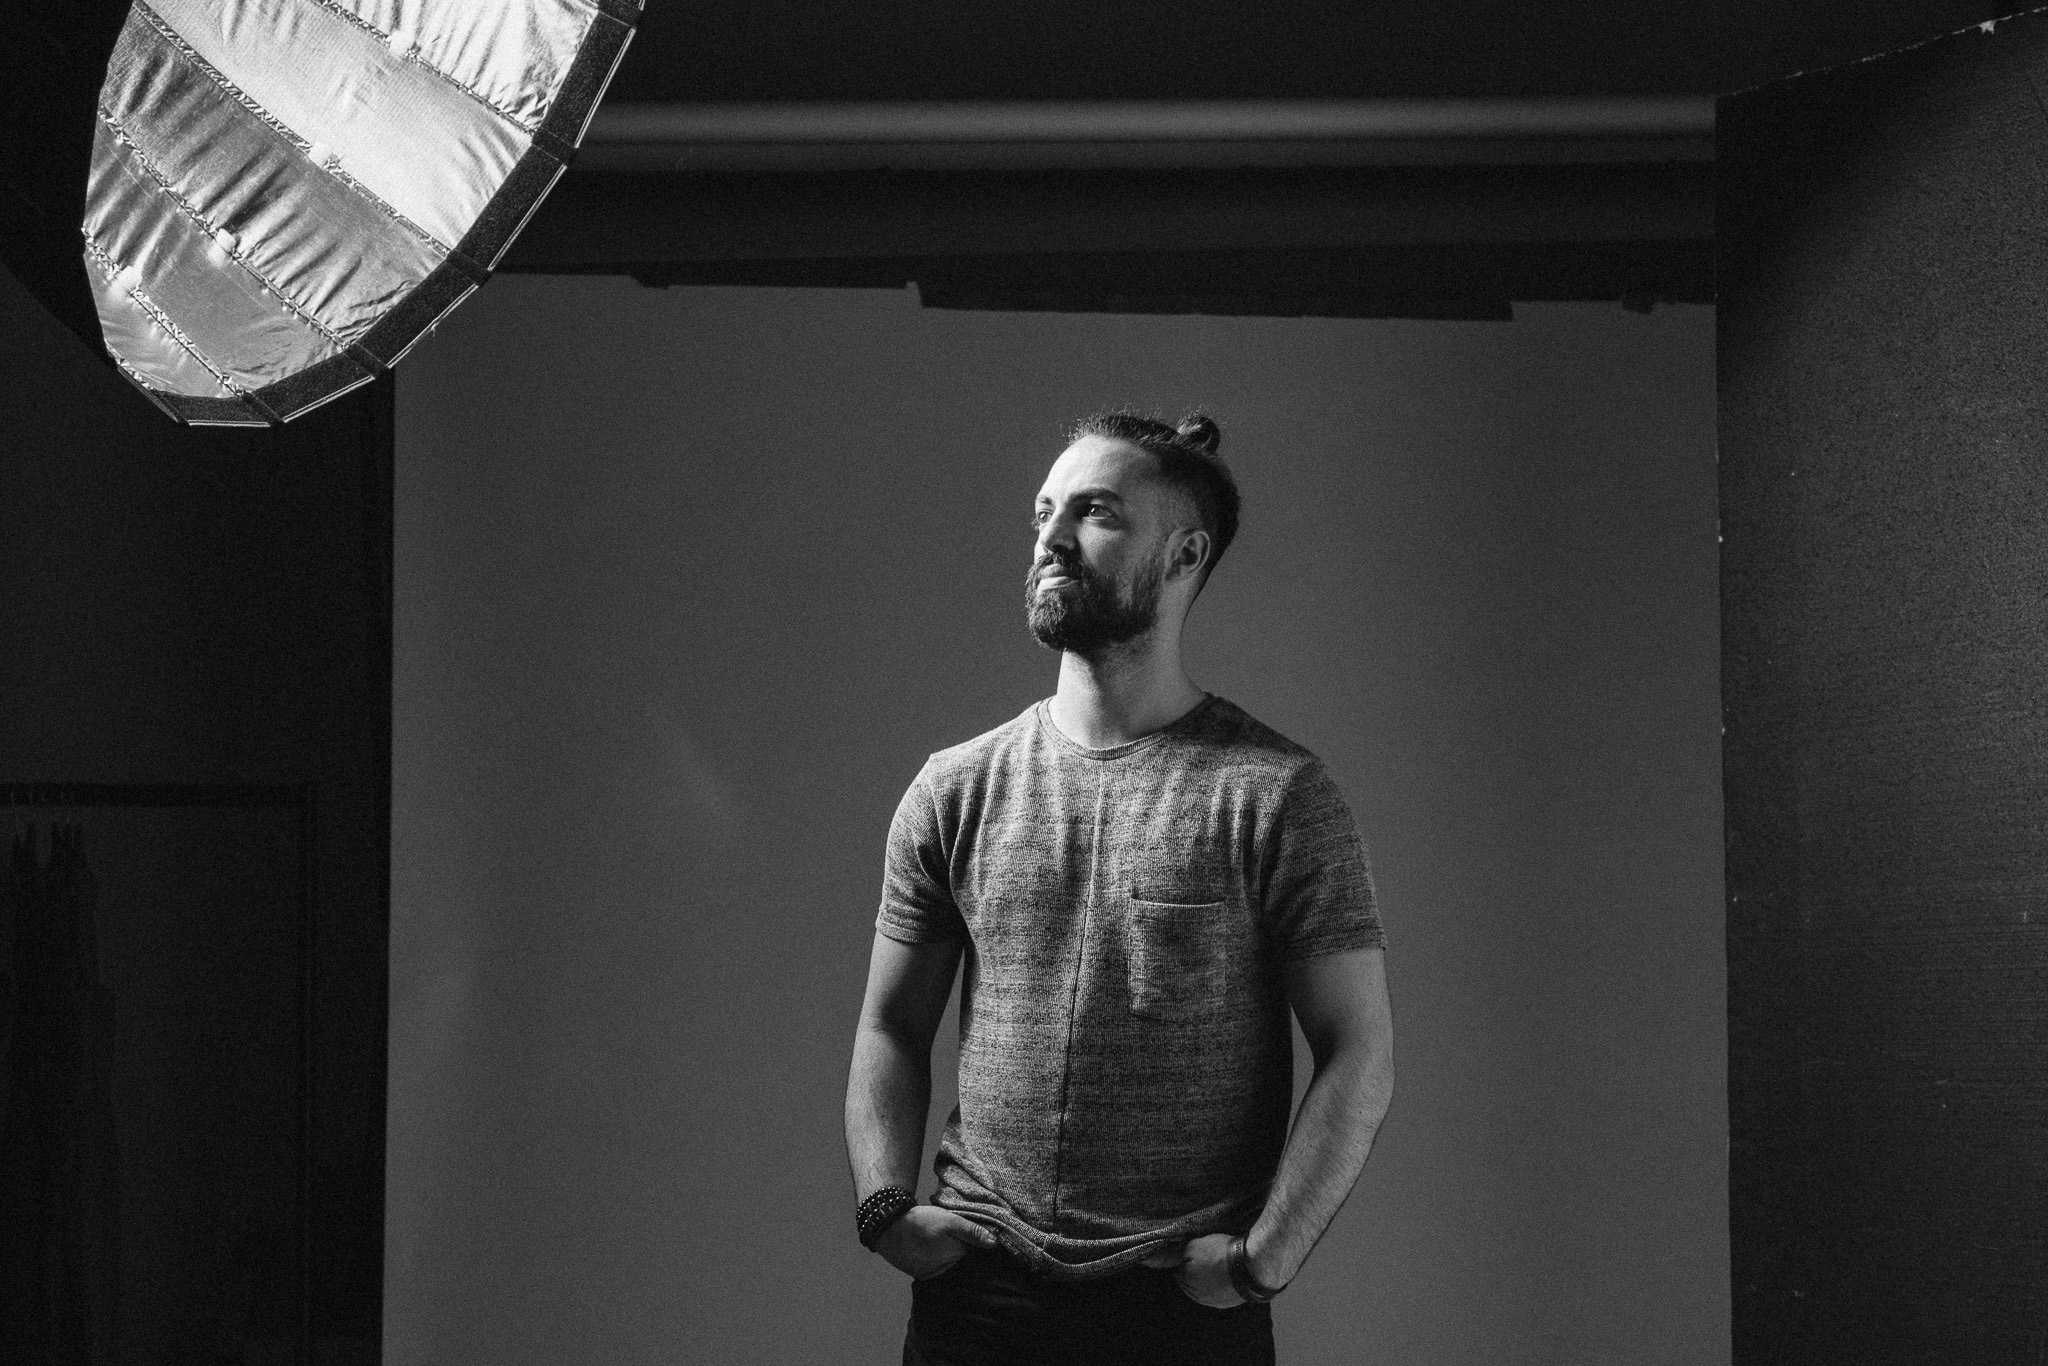 Thinking about something. Testing lights on set of new campaign for Organic Entity Triple Bill.